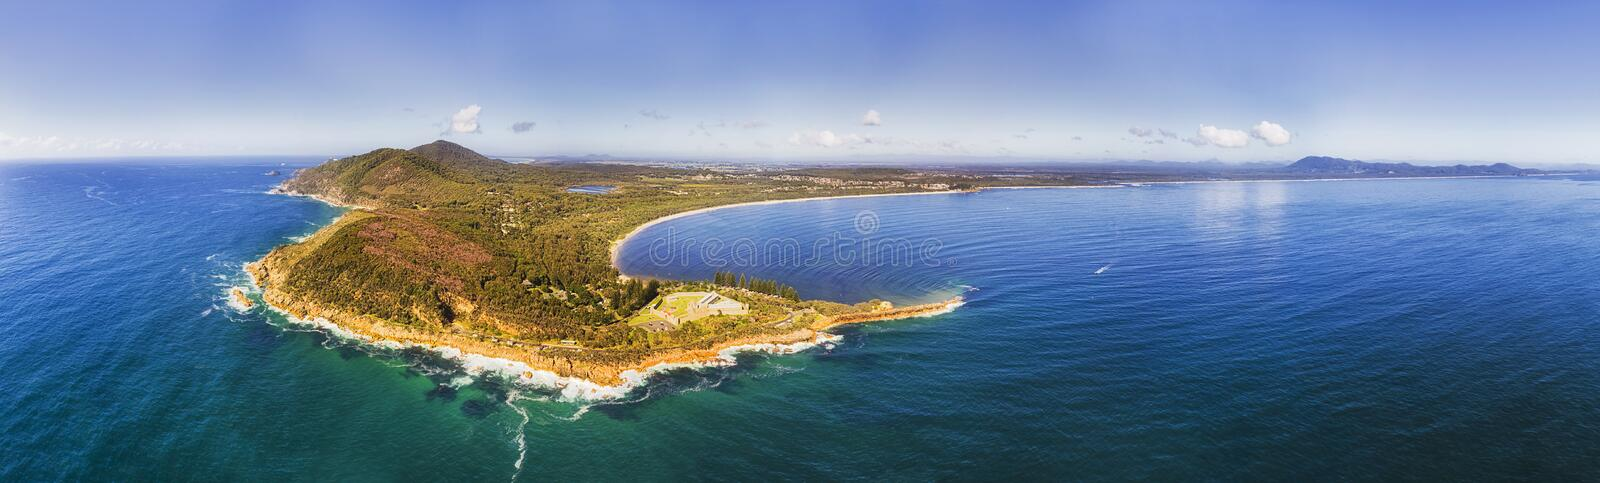 D Arakoon Gaol From Sea Pan. Trial bay gaol in Arakoon national park at the tip of small cape forming shallow bay on Pacific coast of Australia - wide panorama stock photography